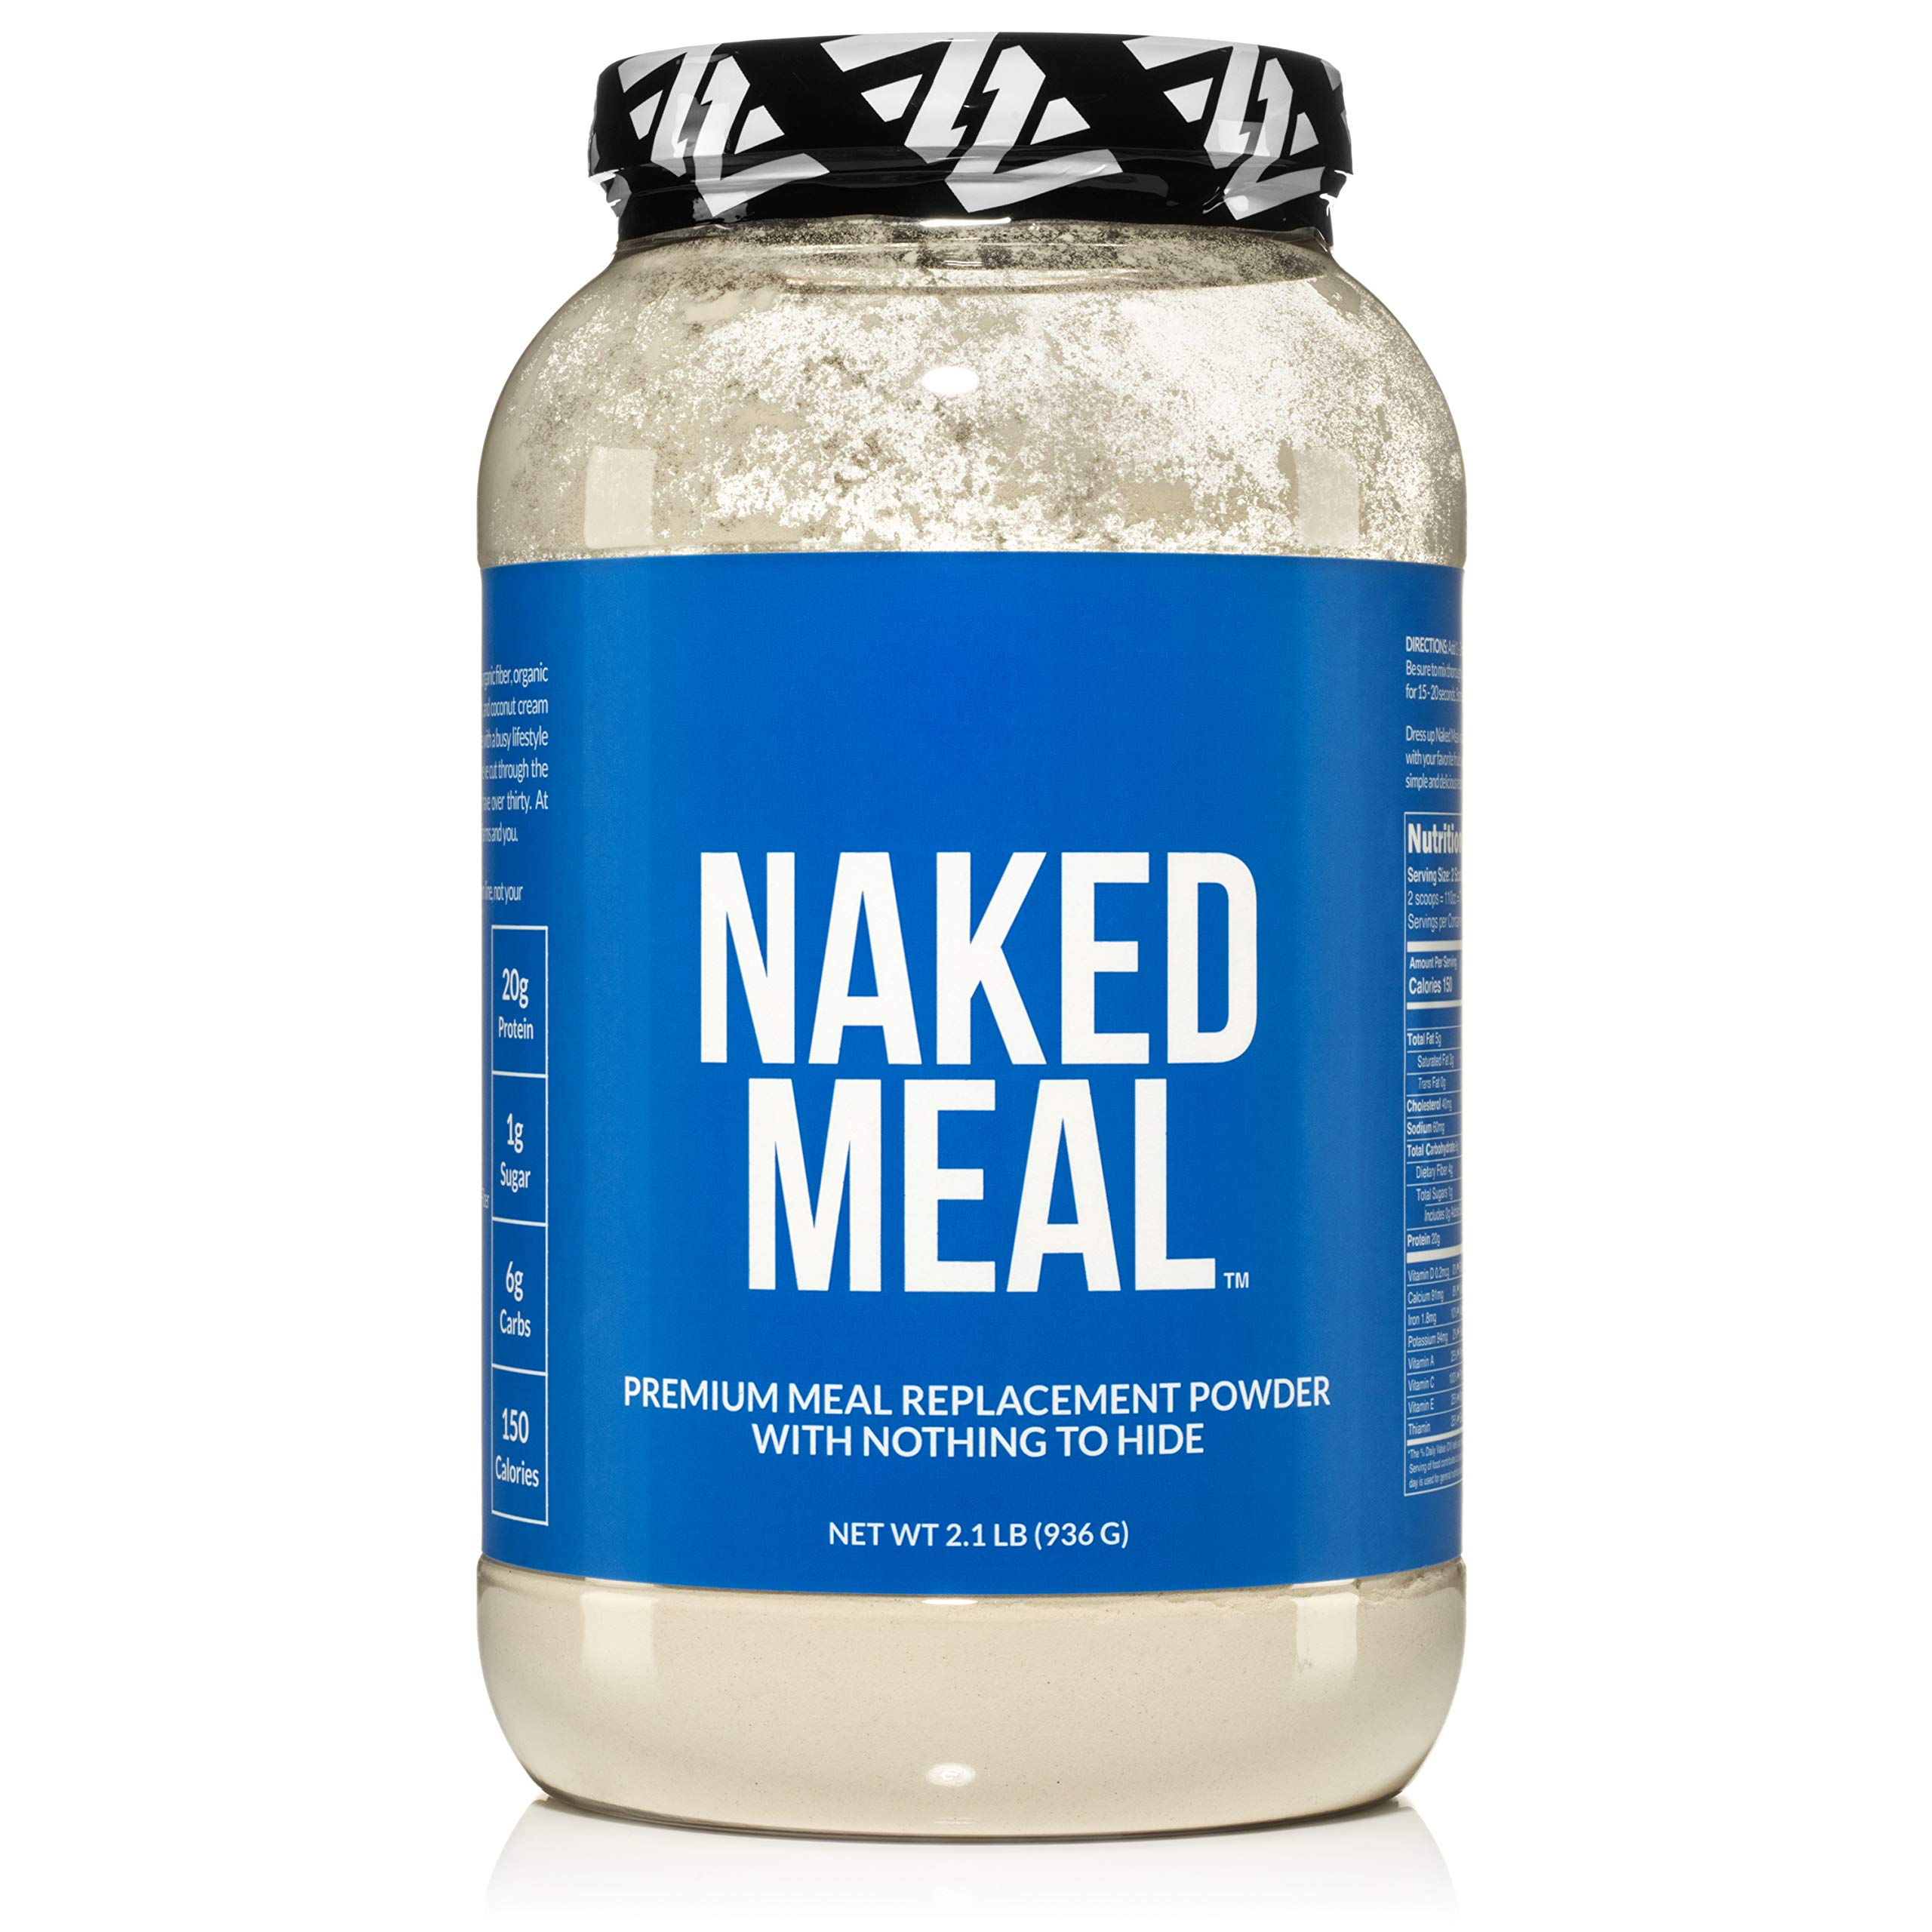 Naked Meal - Healthy Meal Replacement Shakes for Weight Loss or Workout Recovery - Low Carb, Keto Friendly, No Soy, GMO or Gluten - Pre & Probiotics for Gut Health - 2.1 LBS, 26 Servings by NAKED nutrition